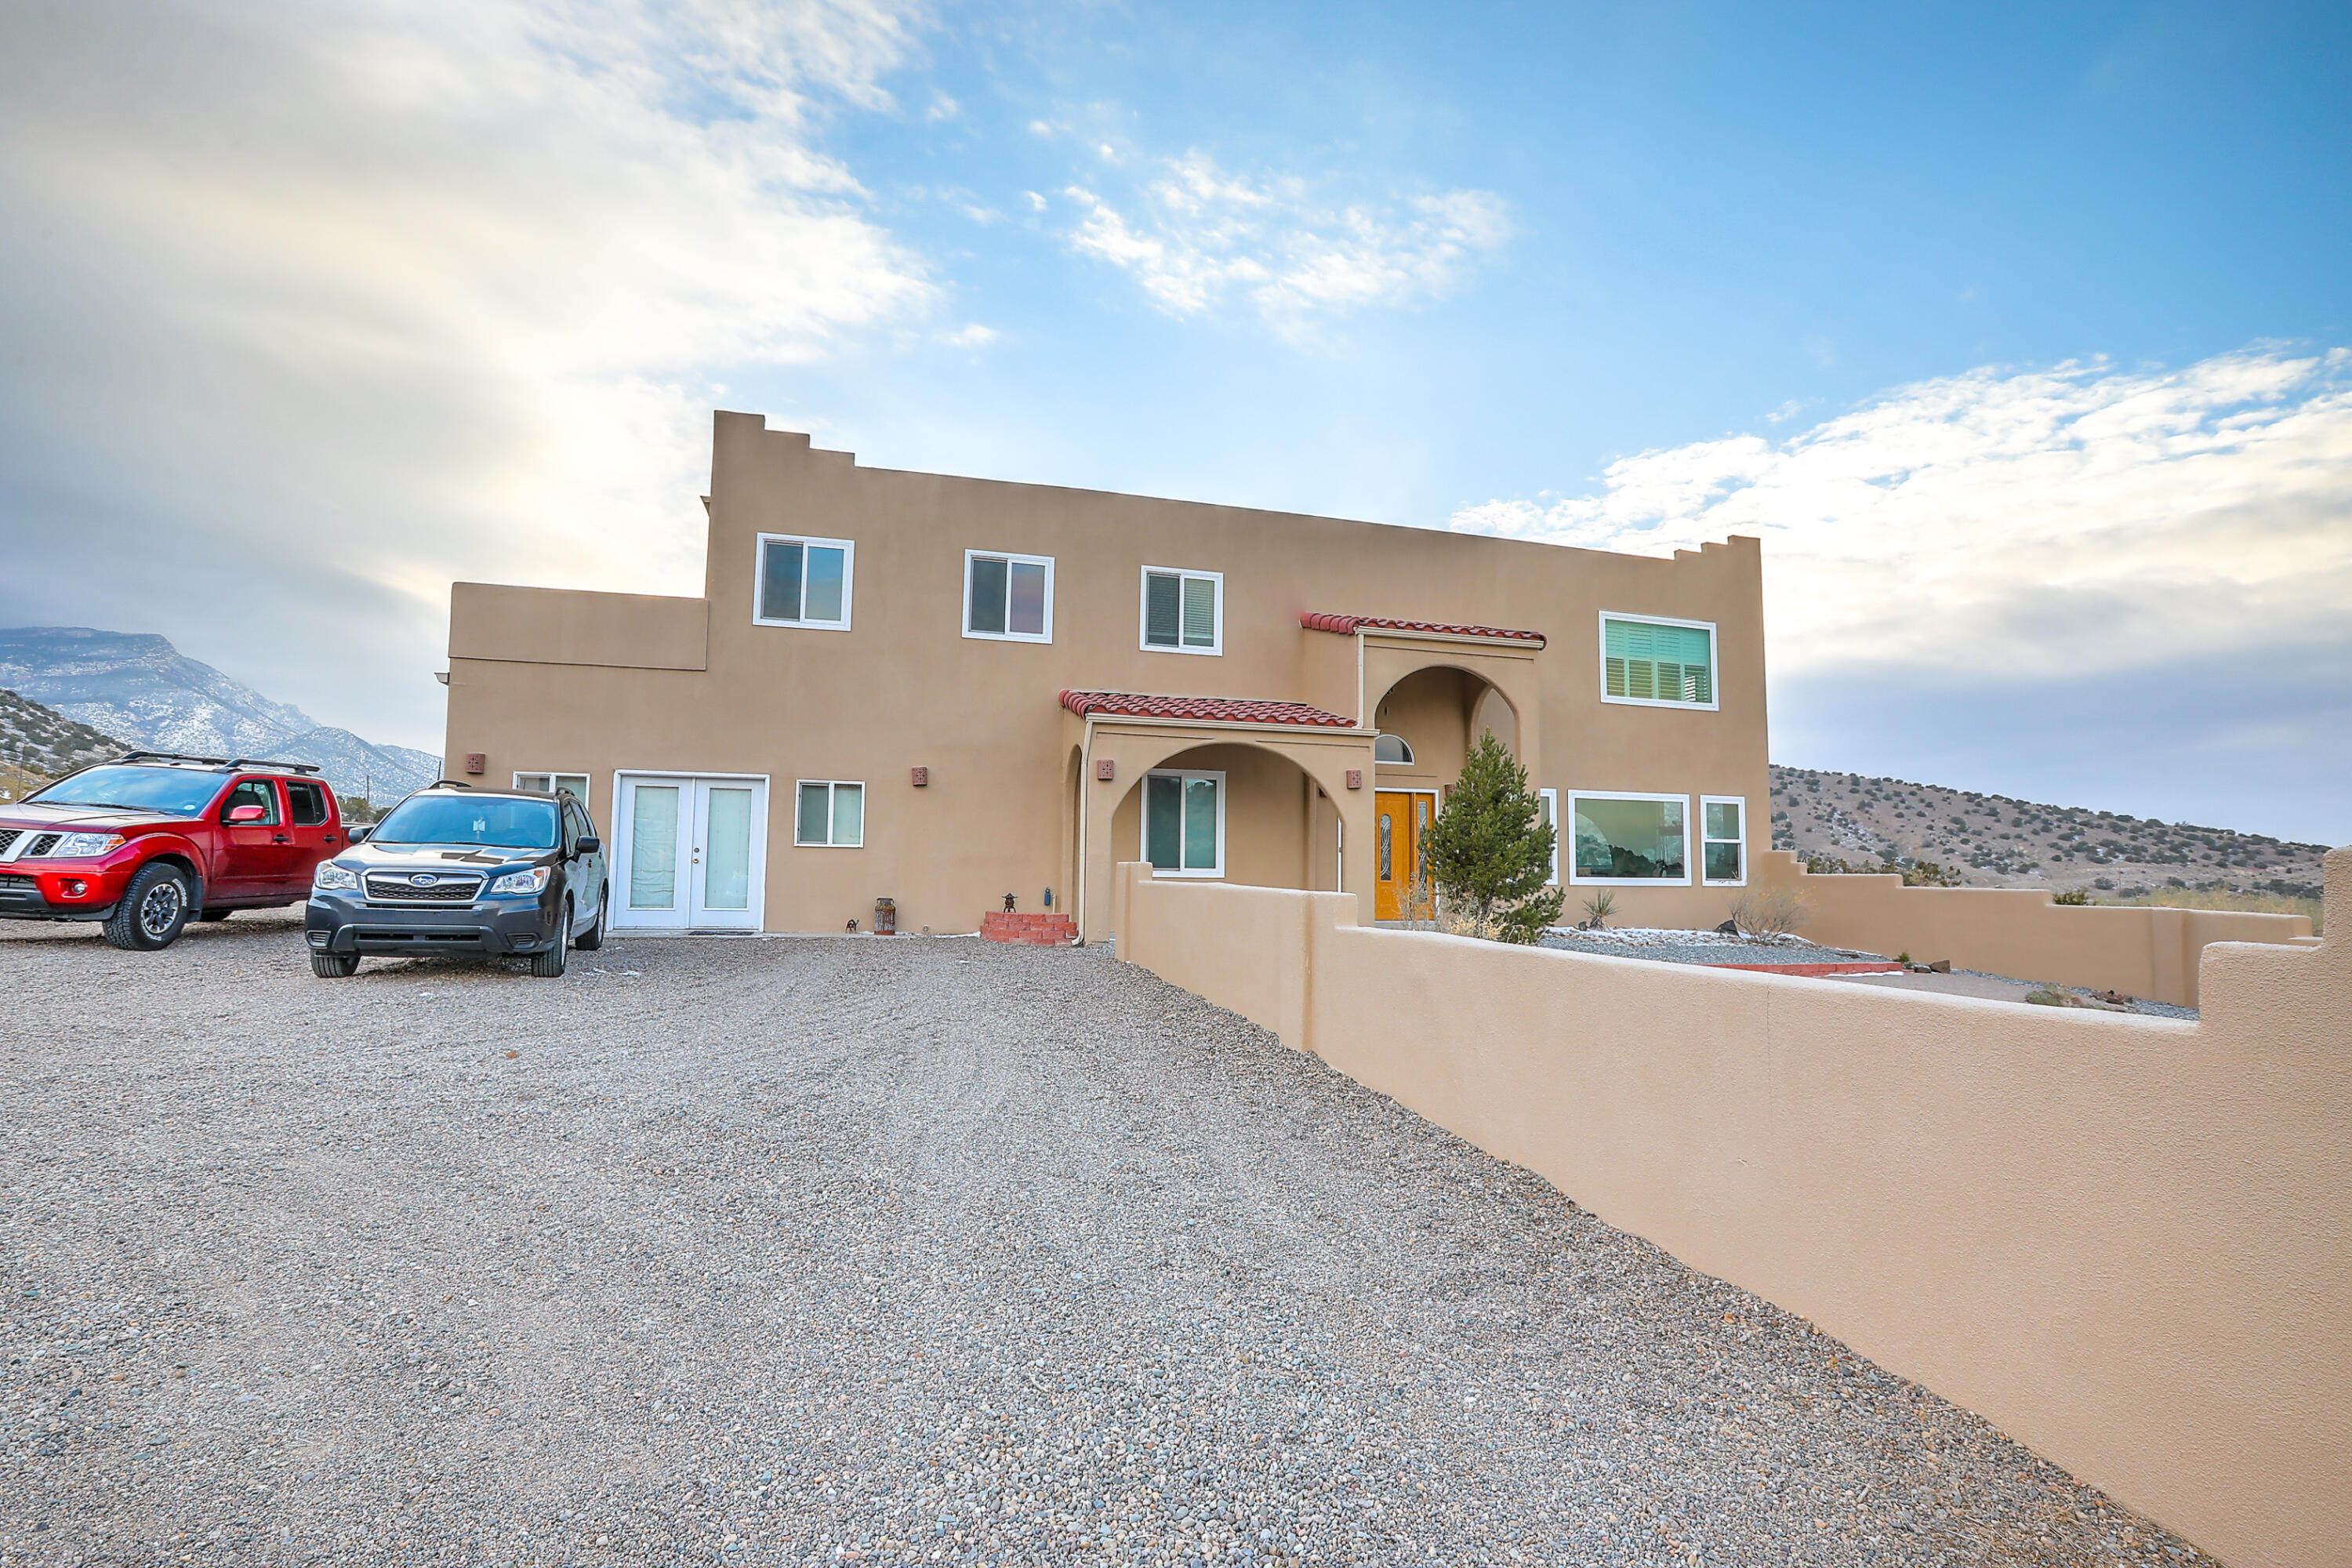 Spectacular 3,500sf contemporary home with endless views in all directions. Recently upgraded to refrigerated air! 4 Bedroom plus a dedicated office space. 3 updated bathrooms! Situated atop 1.6 beautiful Placitas acres. Turn the the corner to breath-taking views in every room. Come see this unique and spacious home before its gone.